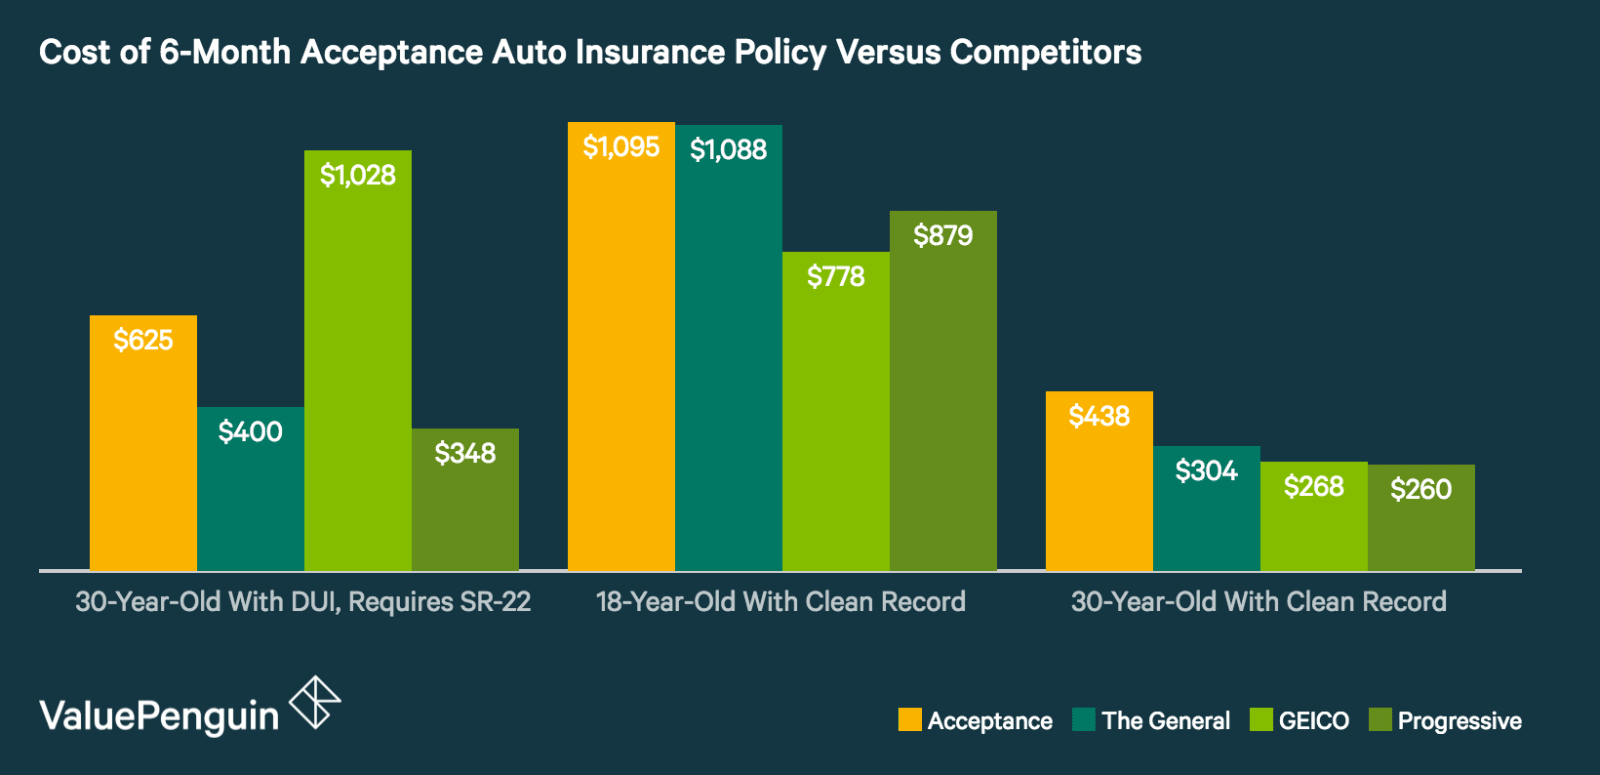 Acceptance Auto Insurance Costs